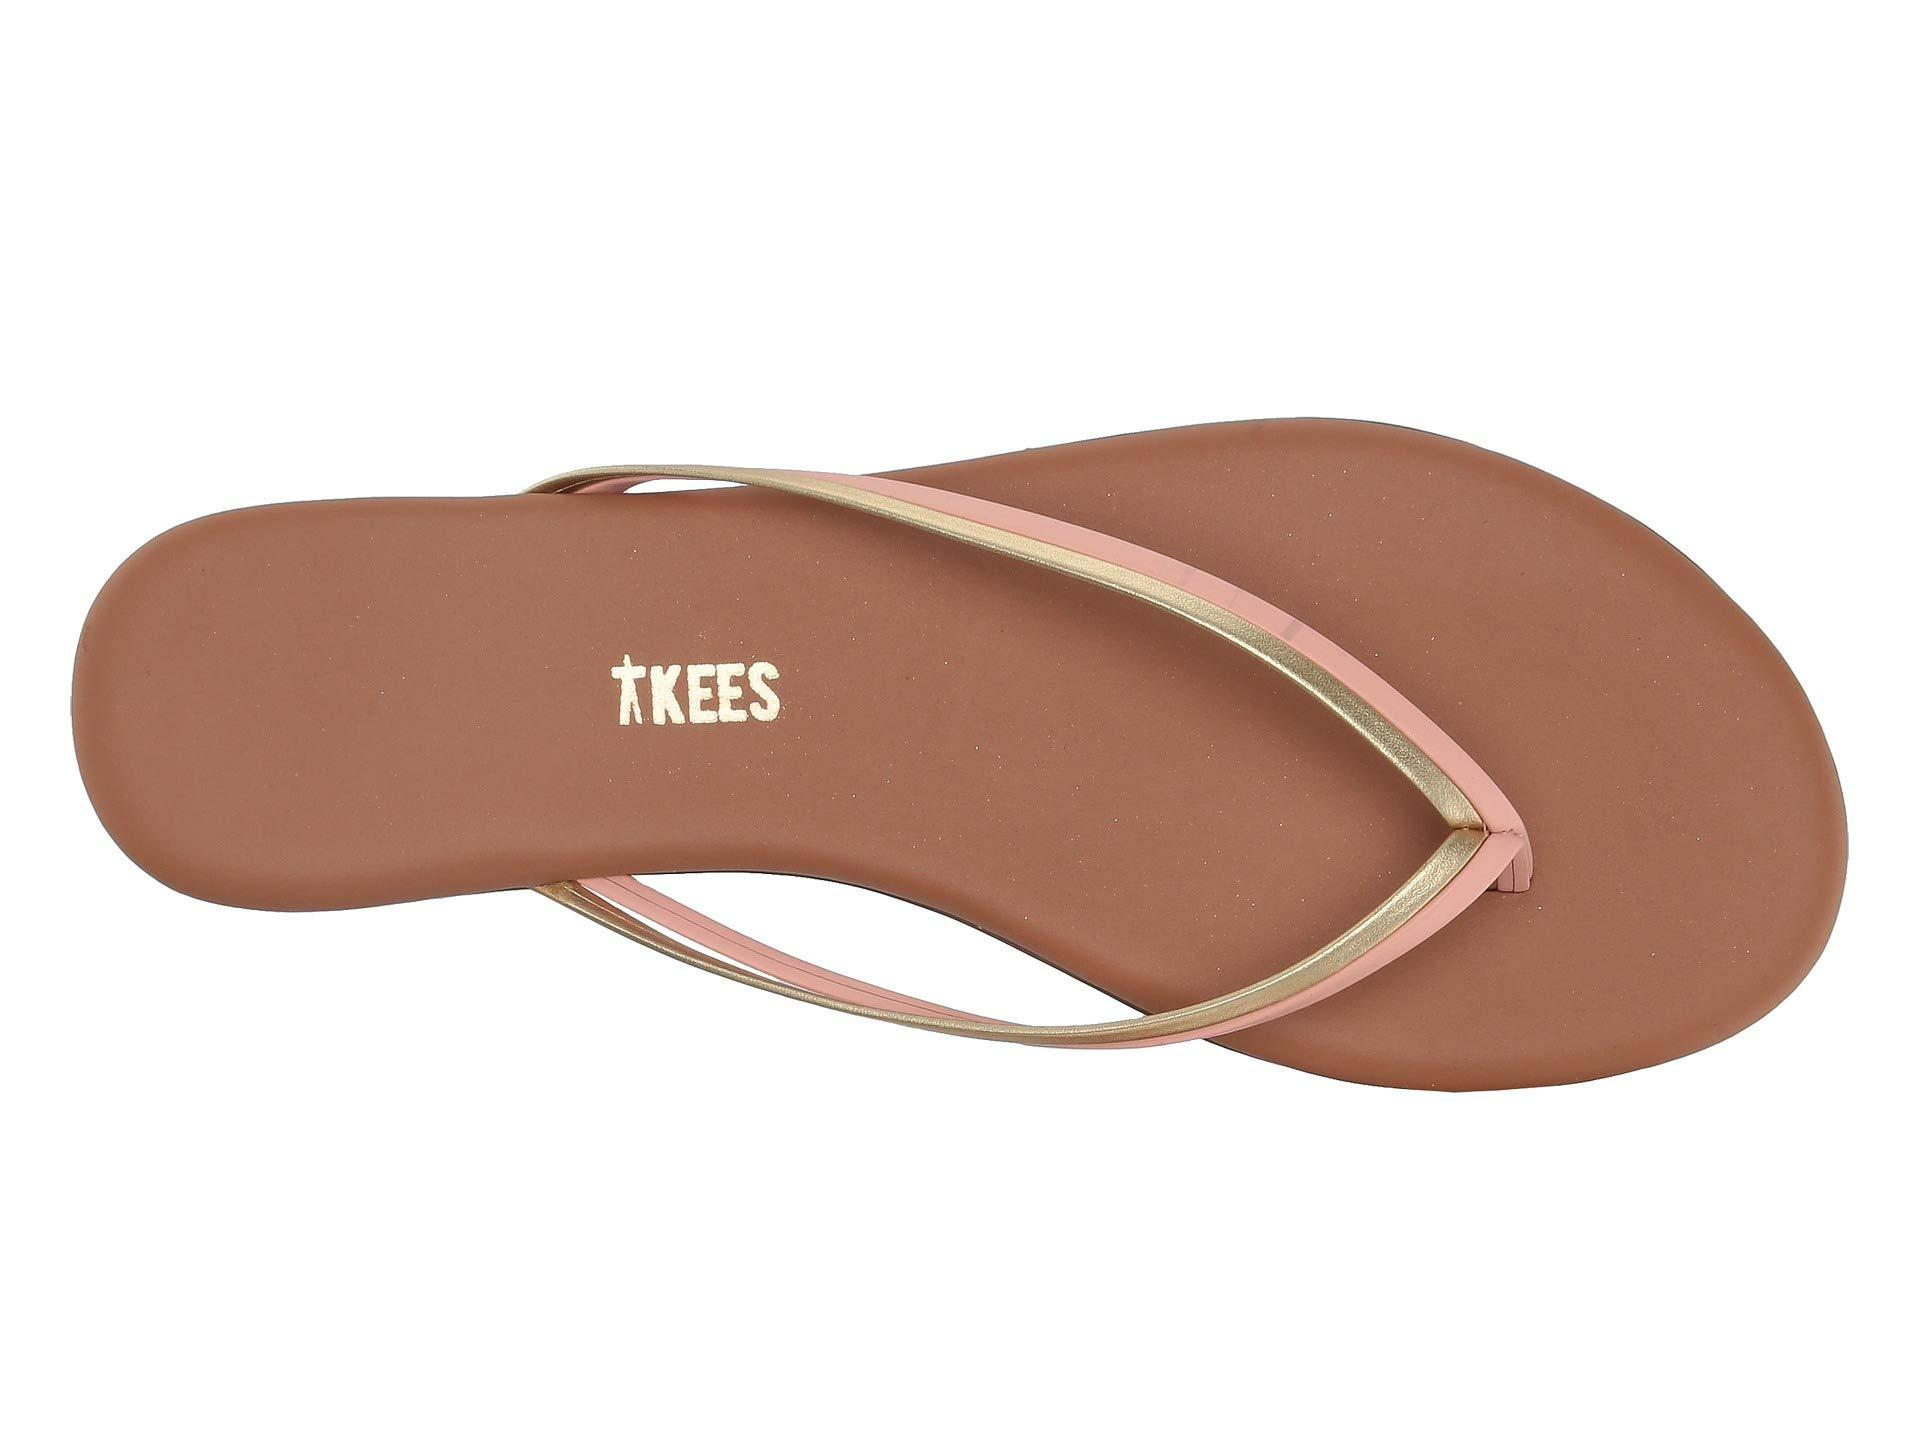 0f1e6b7eb23 TKEES - Multicolor Flip-flop-duos (oyster Shell) Women s Toe Open Shoes.  View fullscreen